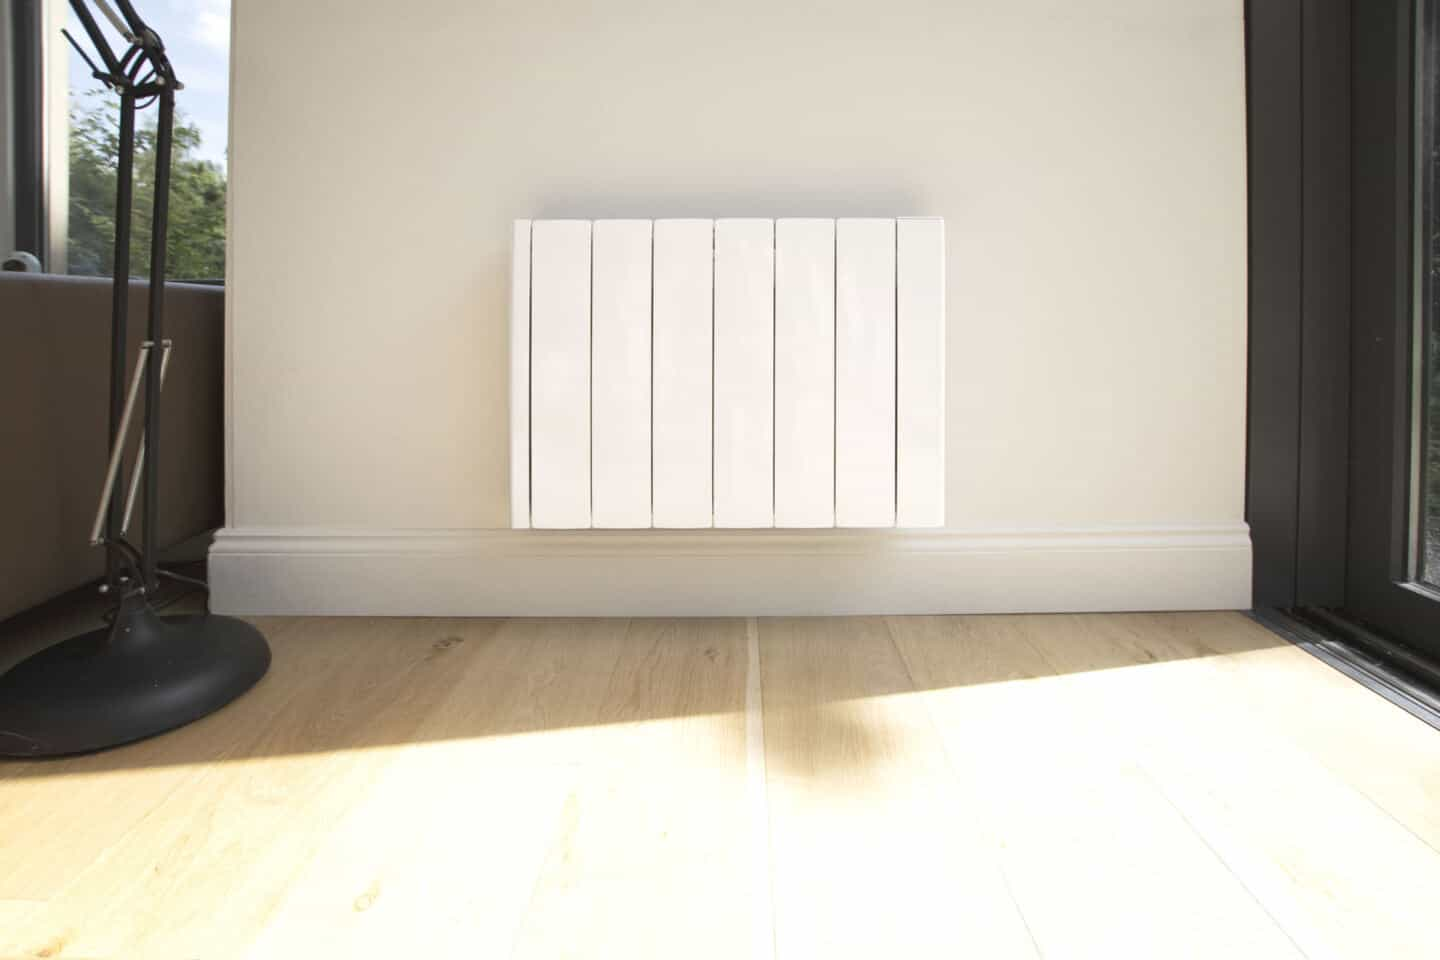 The Ecostrad iQ Ceramic smart electric radiator mounted on a white wall